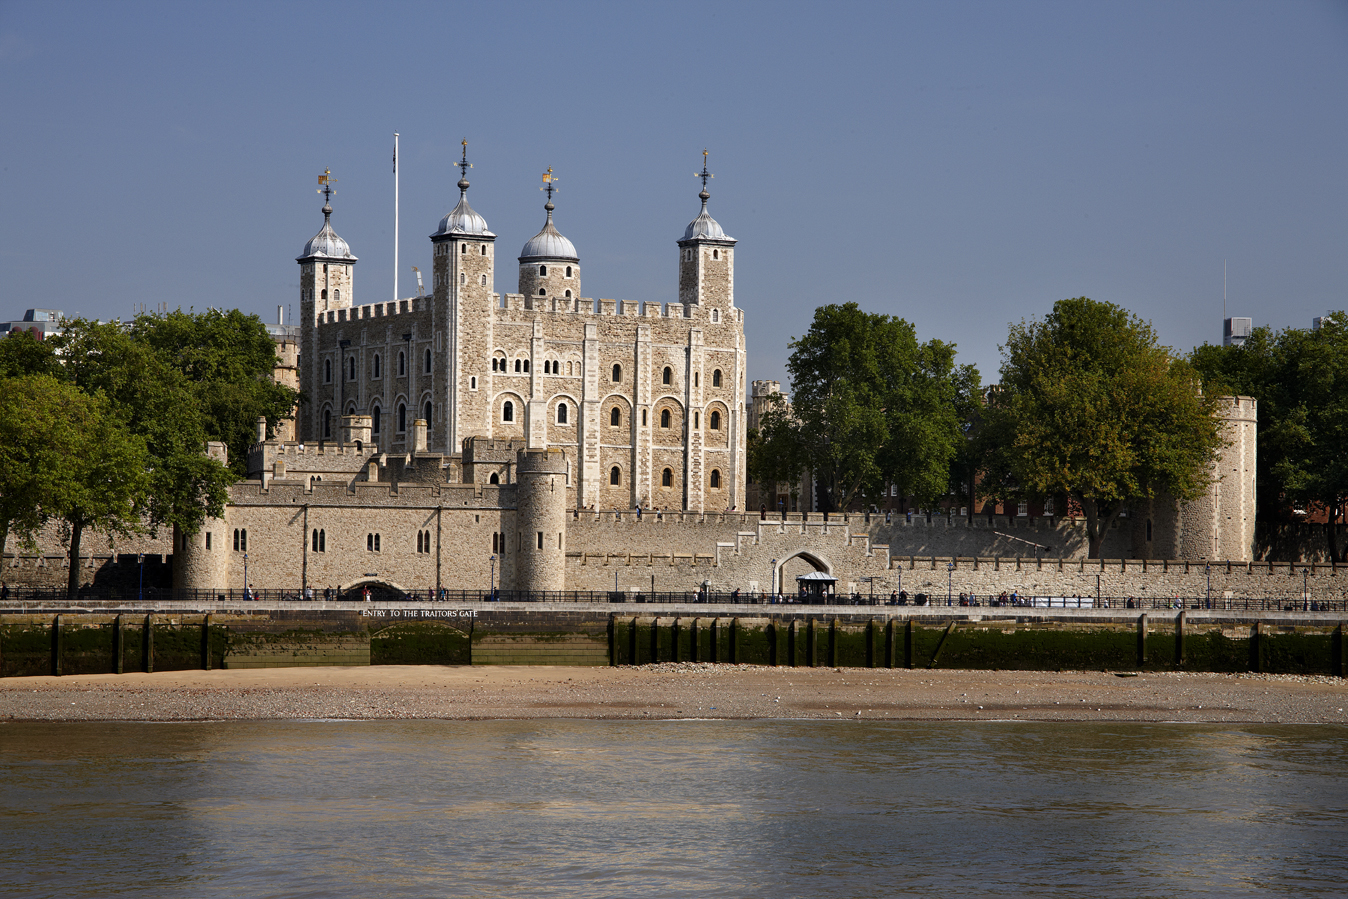 Tower of London_F8O2478